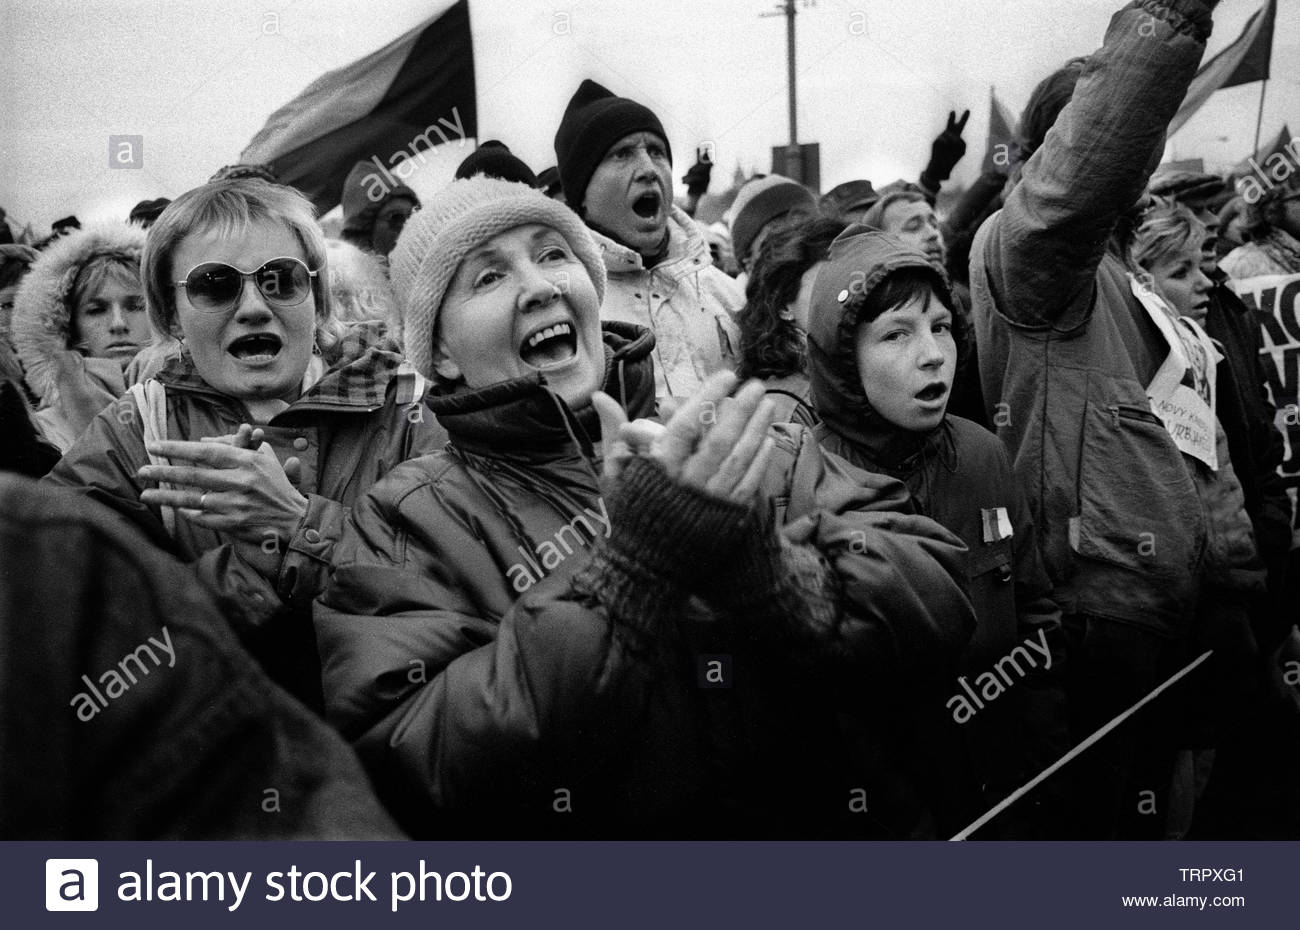 Czechoslovakia, Prague,1989 during the Velvet Revolution, the fall of communism in Eastern Europe. COPYRIGHT PHOTOGRAPH BY BRIAN HARRIS  © 07808-579804 Stock Photo